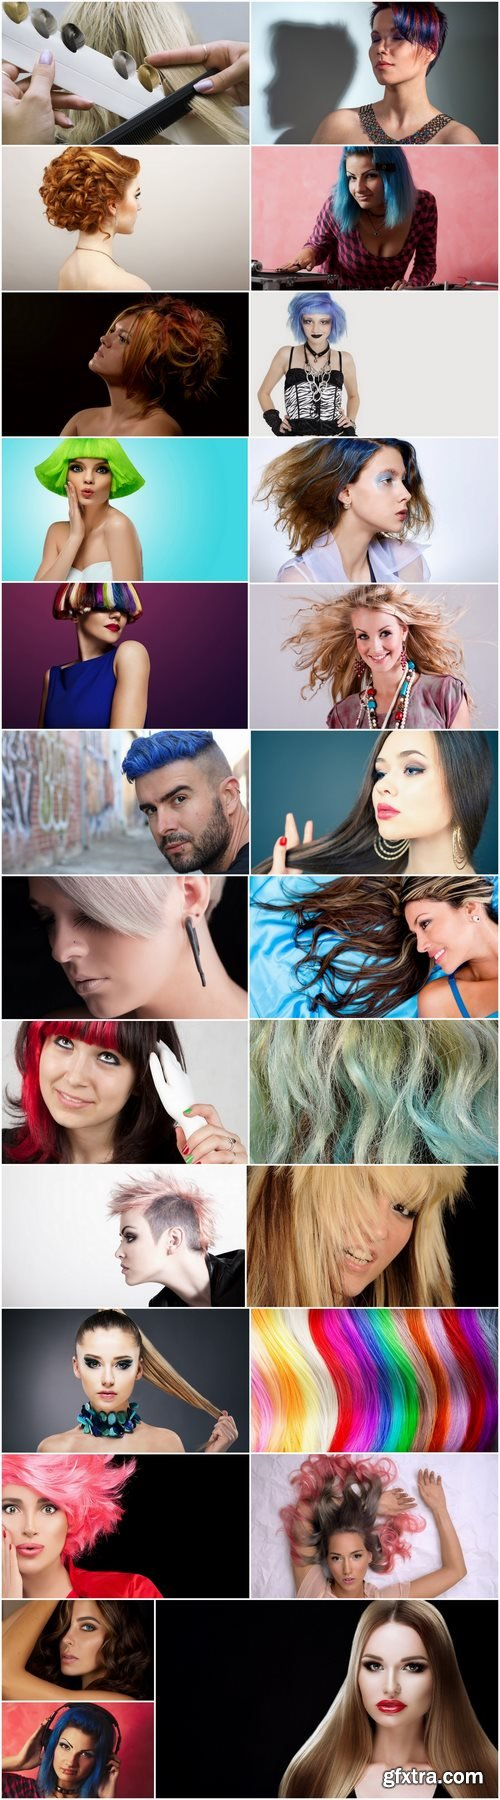 Colored hair hairstyle luxury girl woman 25 HQ Jpeg